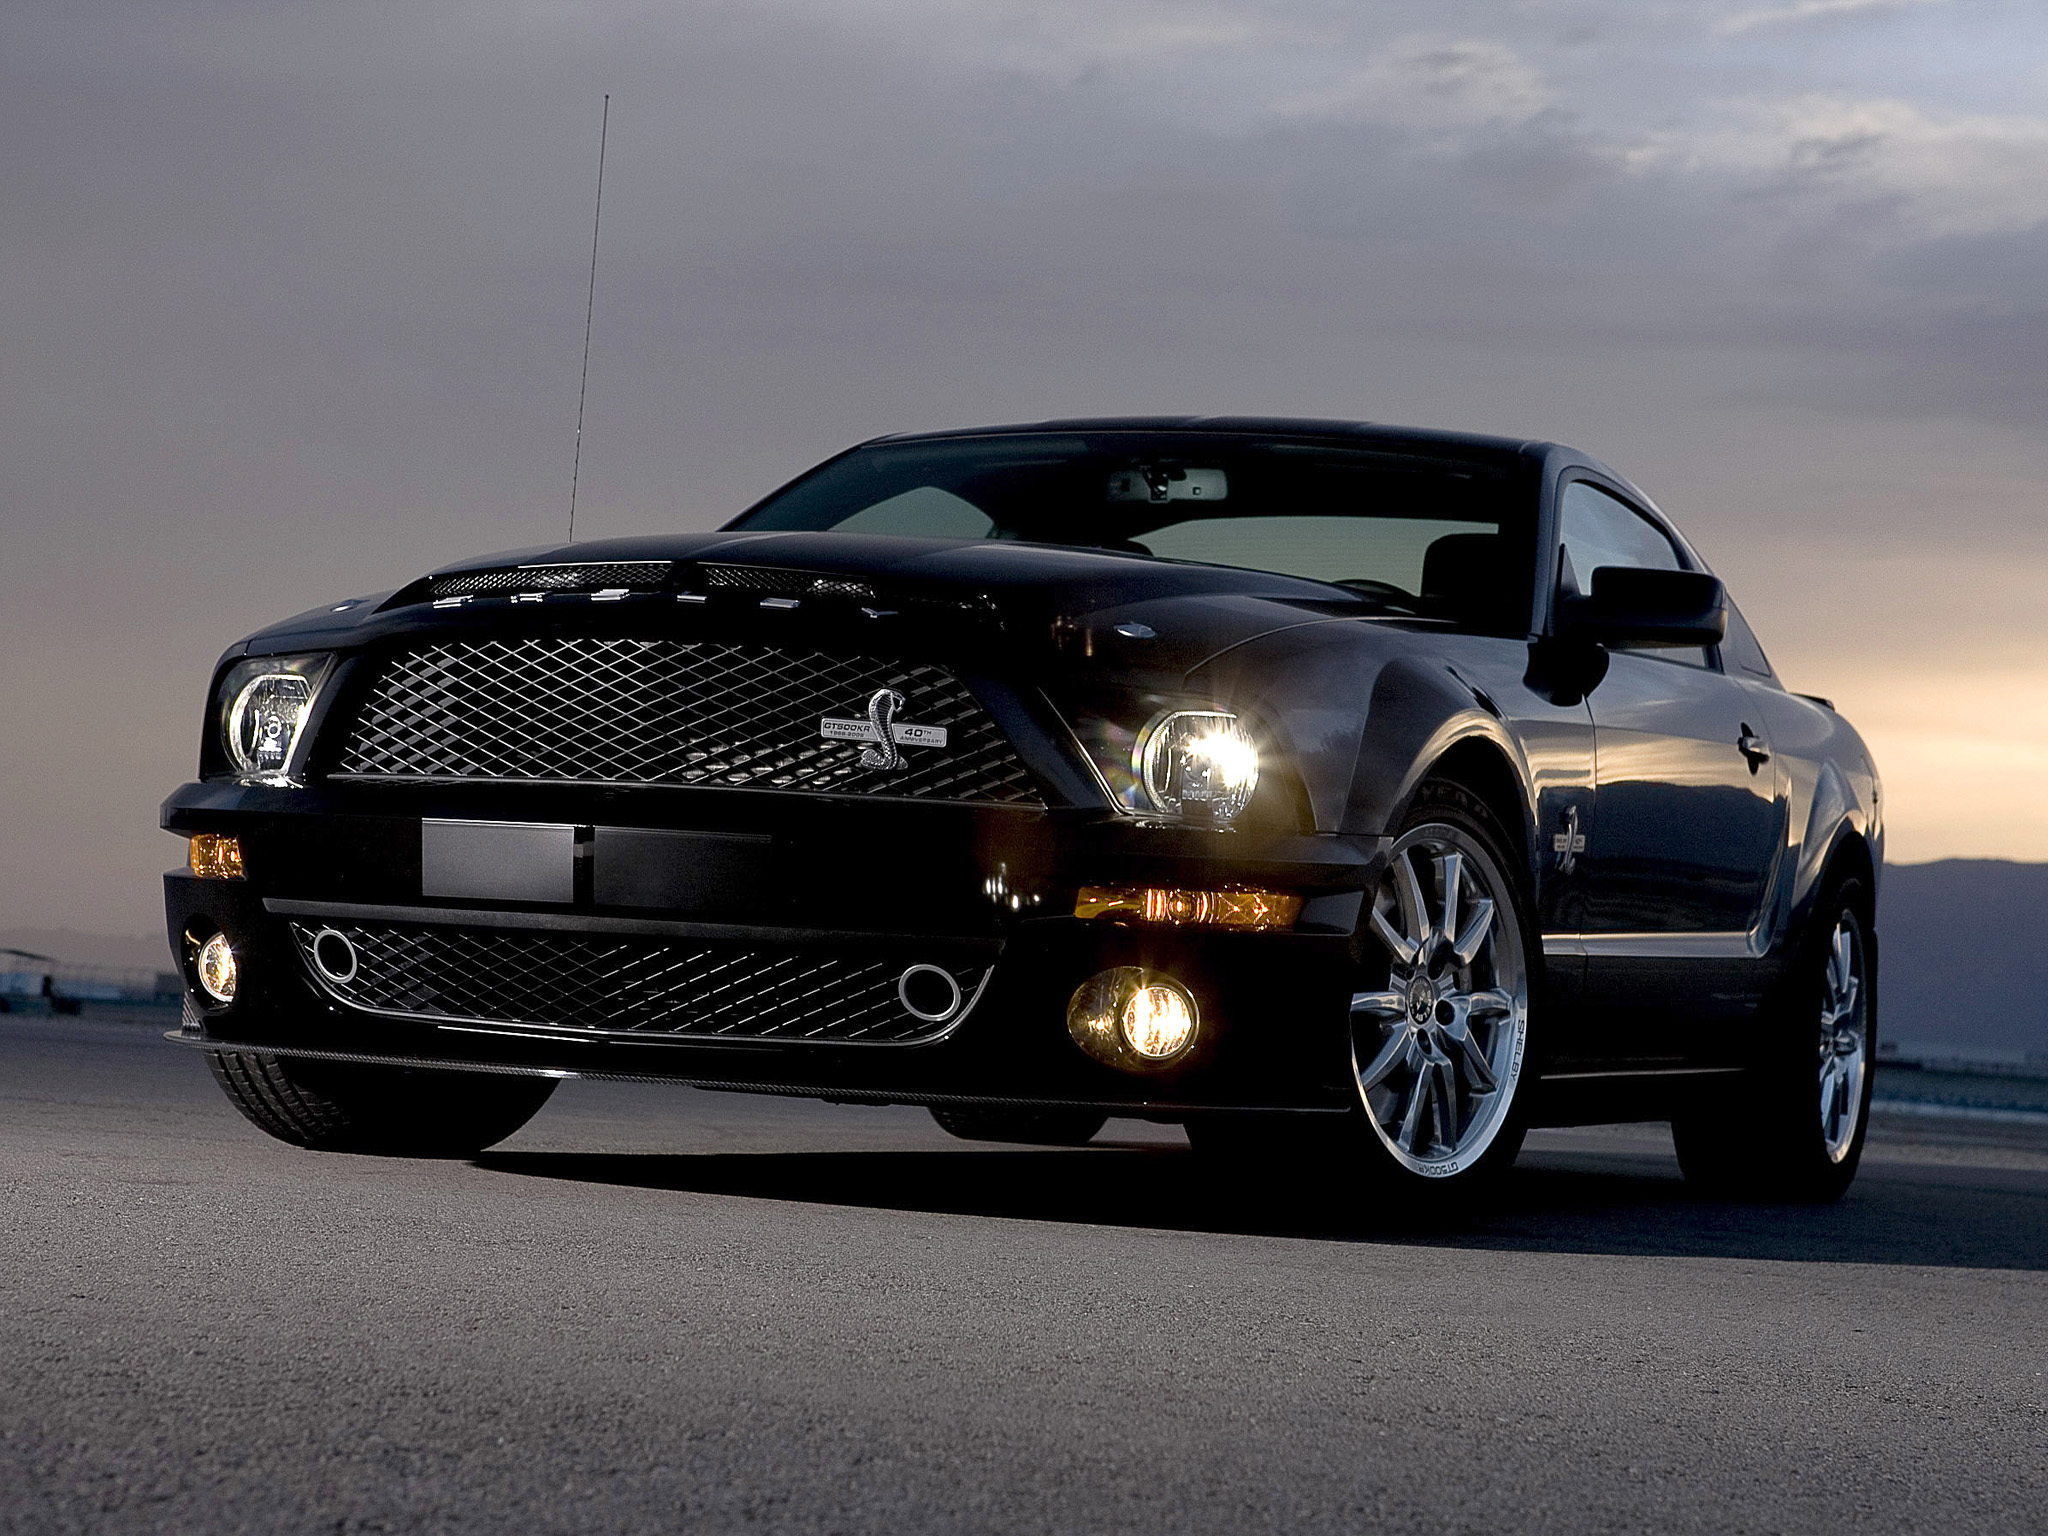 2008 shelby gt500 kr gt500 ford mustang muscle classic wallpaper 2048x1536 96613 wallpaperup. Black Bedroom Furniture Sets. Home Design Ideas